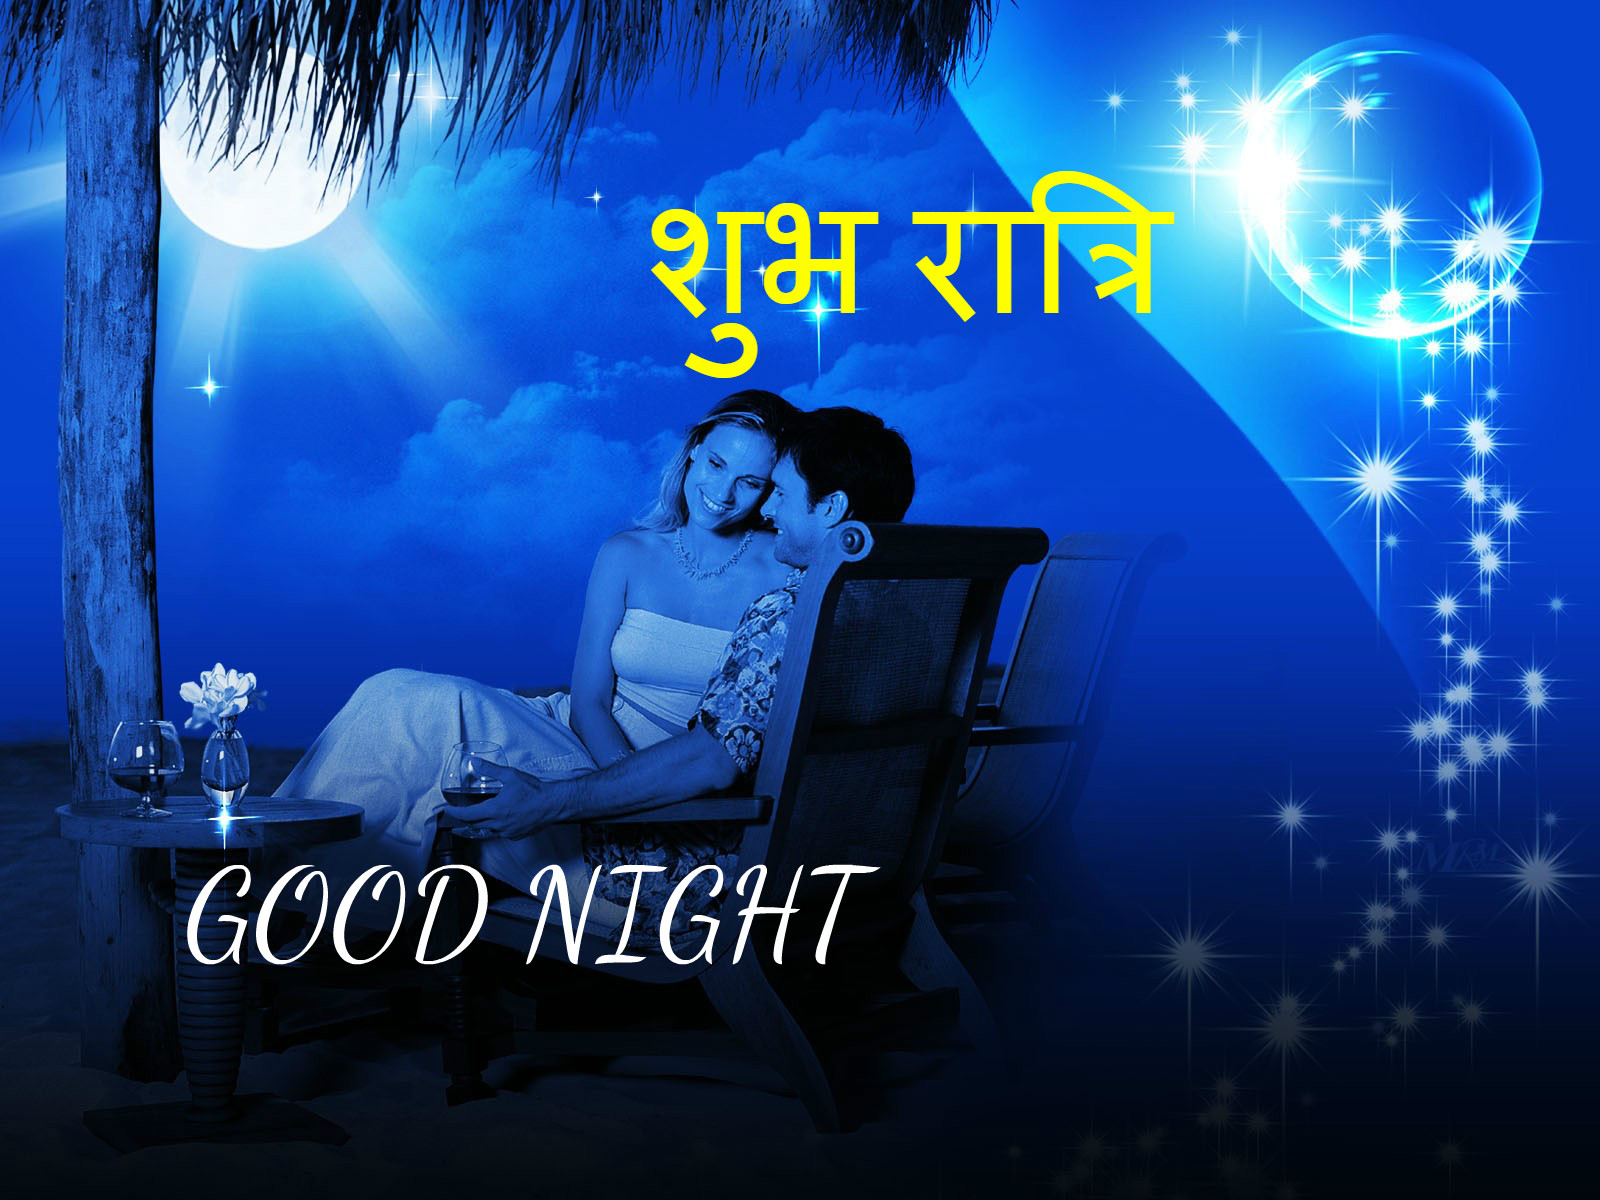 Sad Good Night Sms For Facebook: Sms urdu love funny ghazal english ` friend eid mubarak sad ...